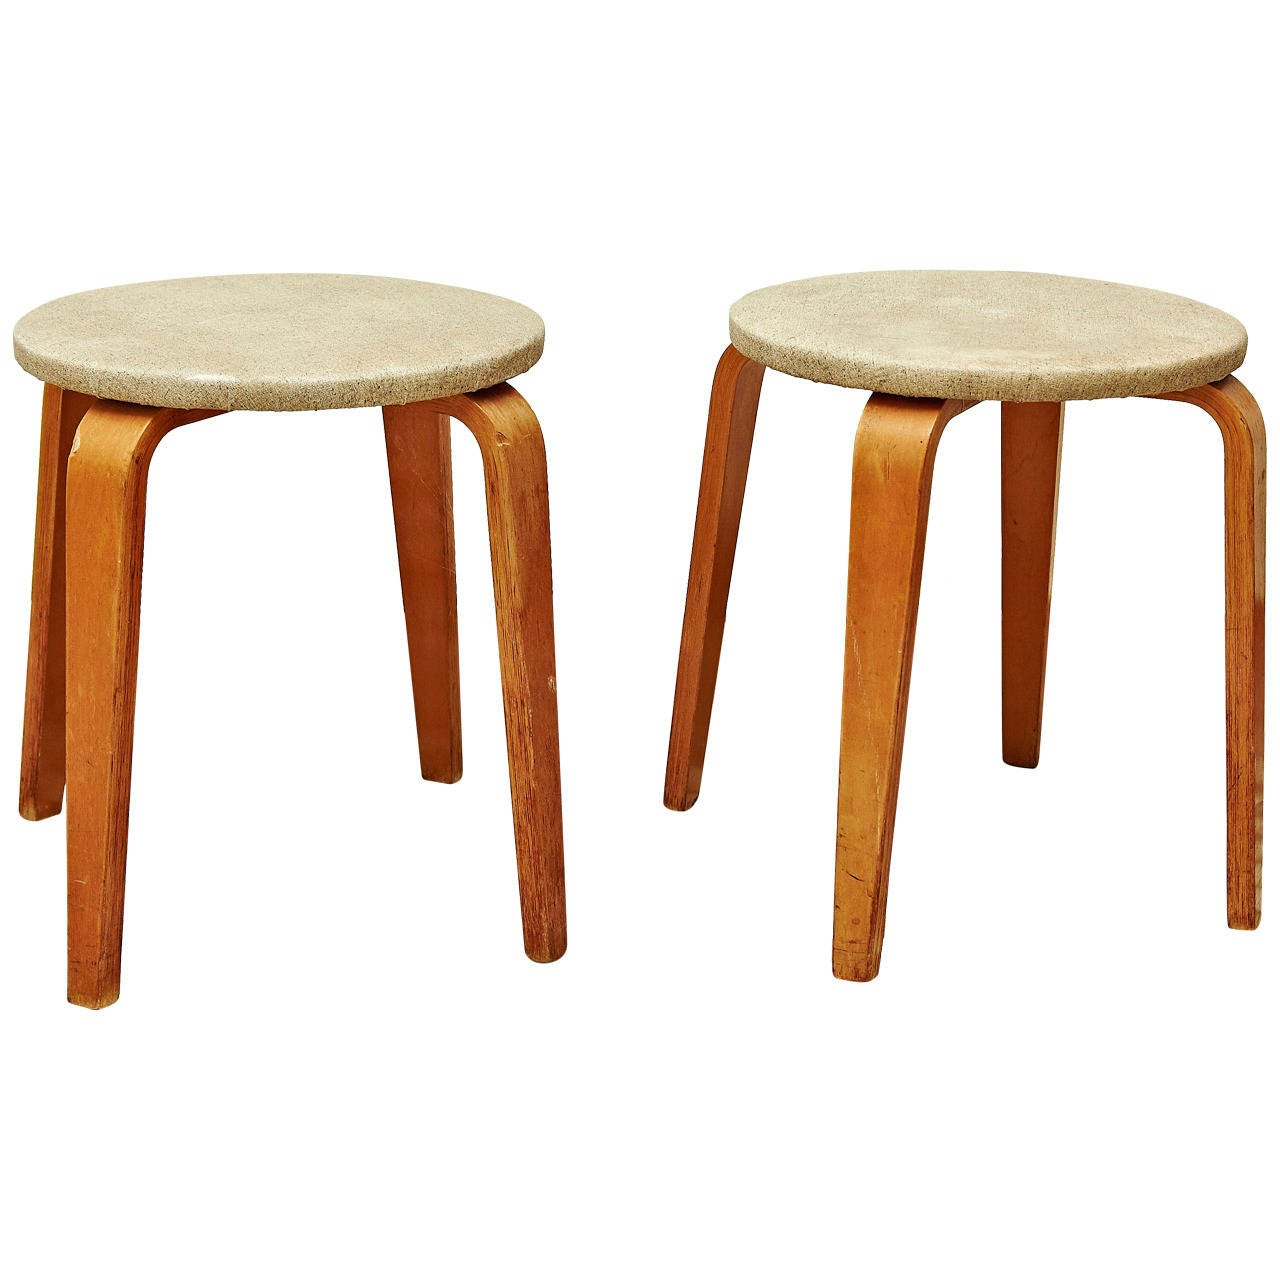 Cor Alons Stool circa 1950 For Sale at 1stdibs